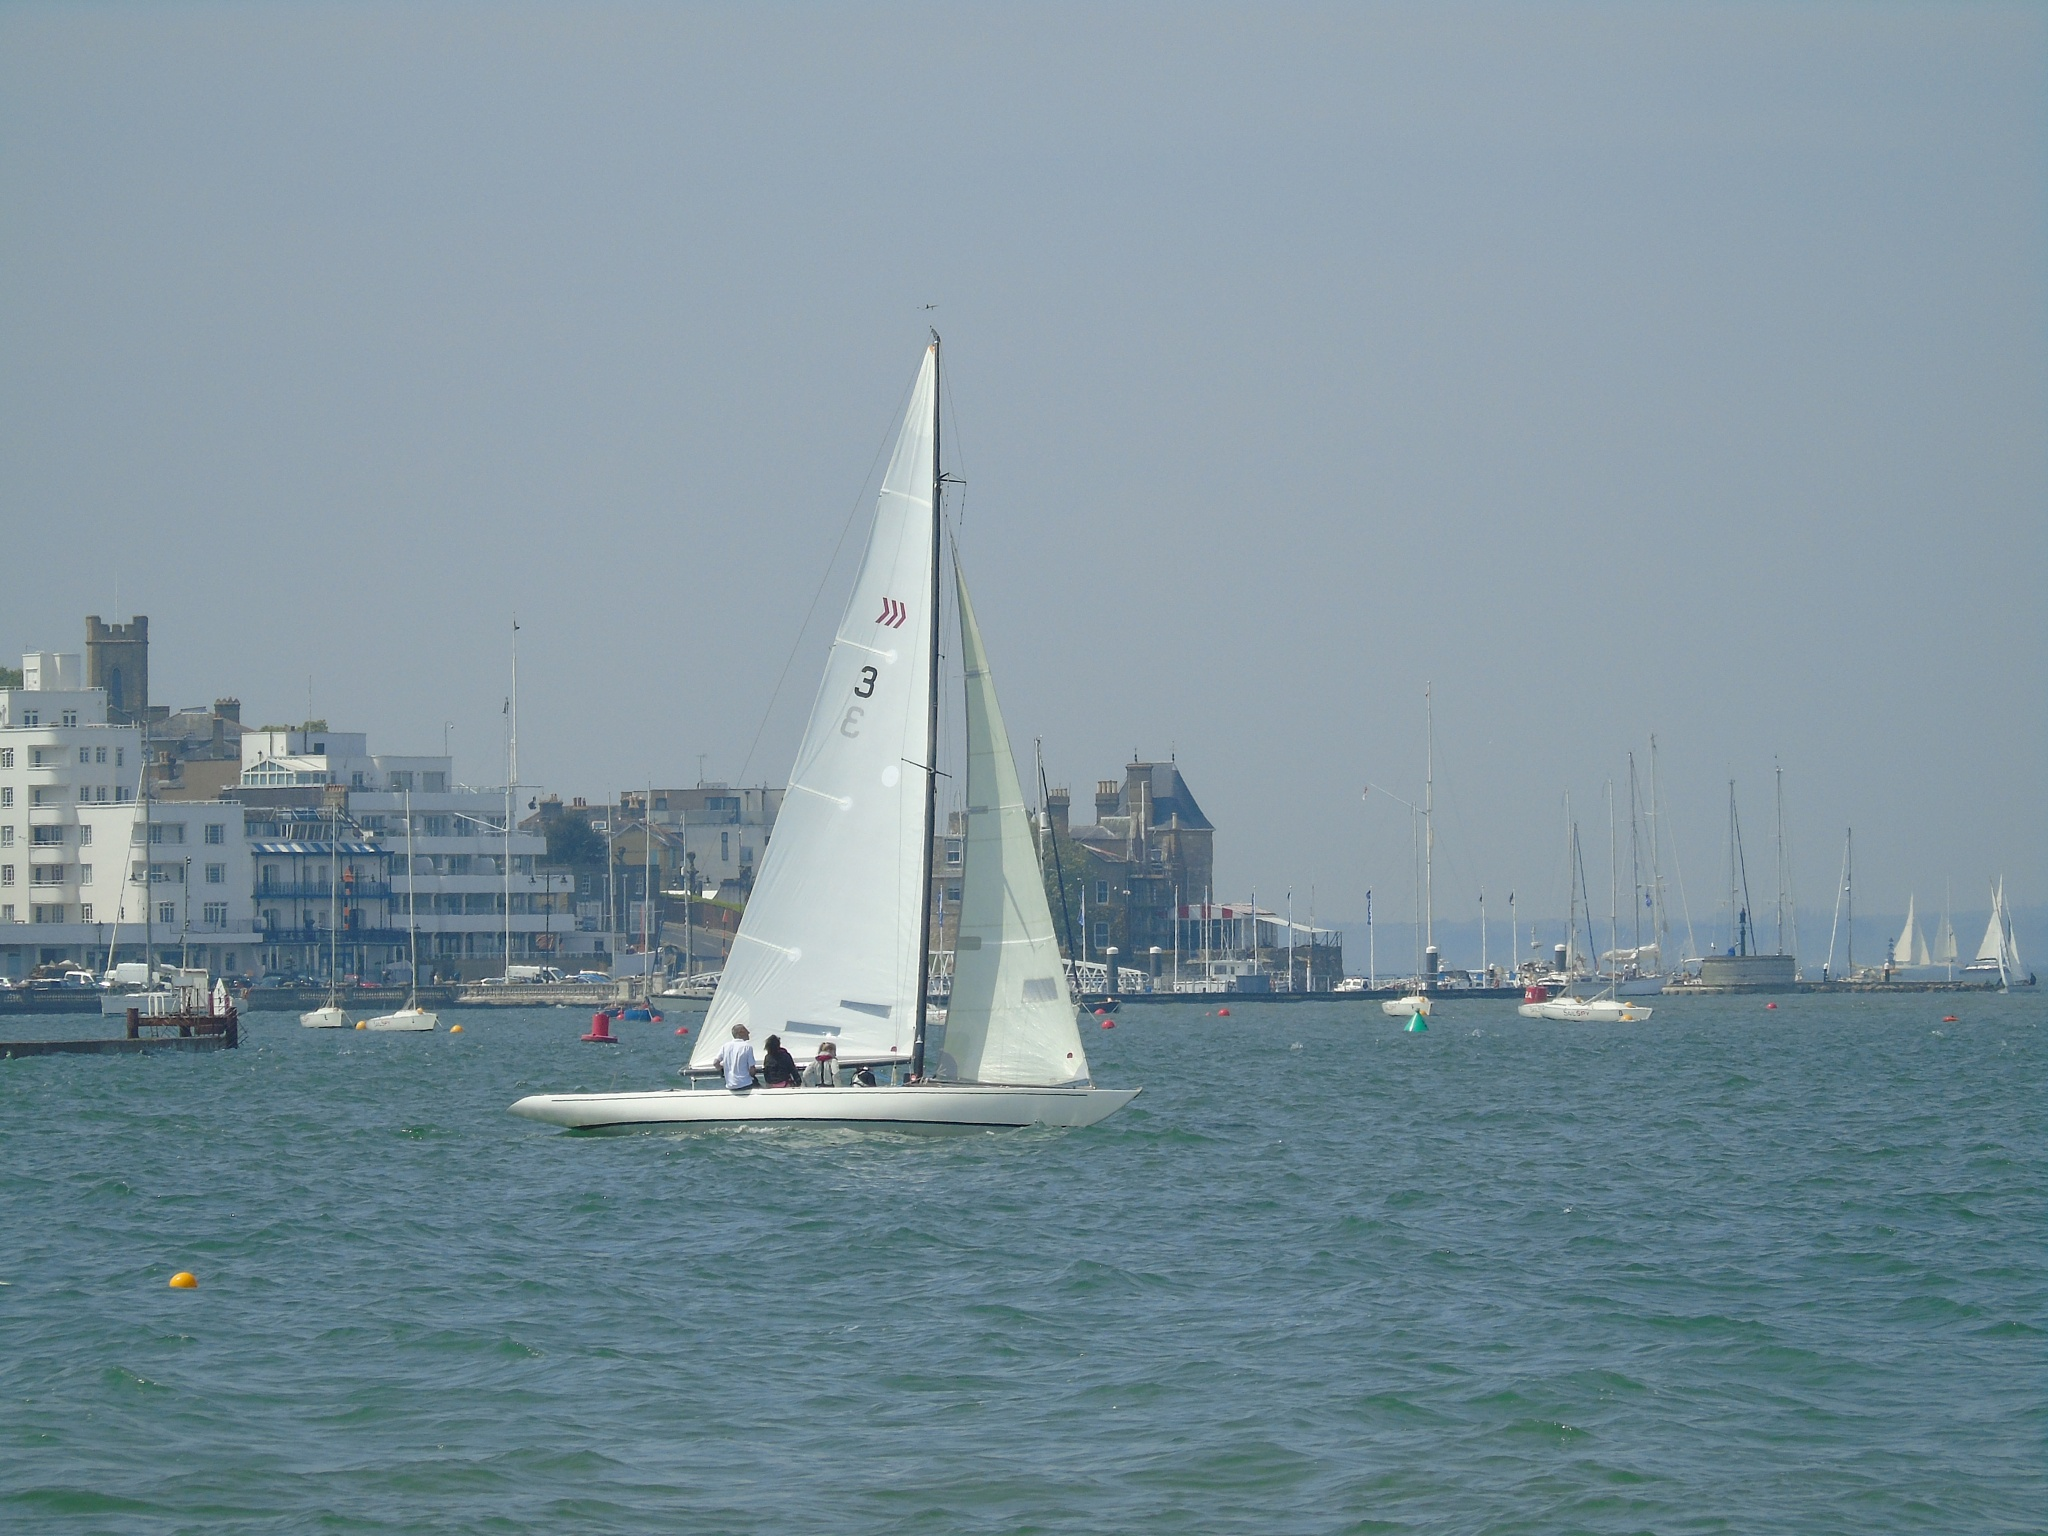 Cowes Isle of Wight by Jan.ohnokt